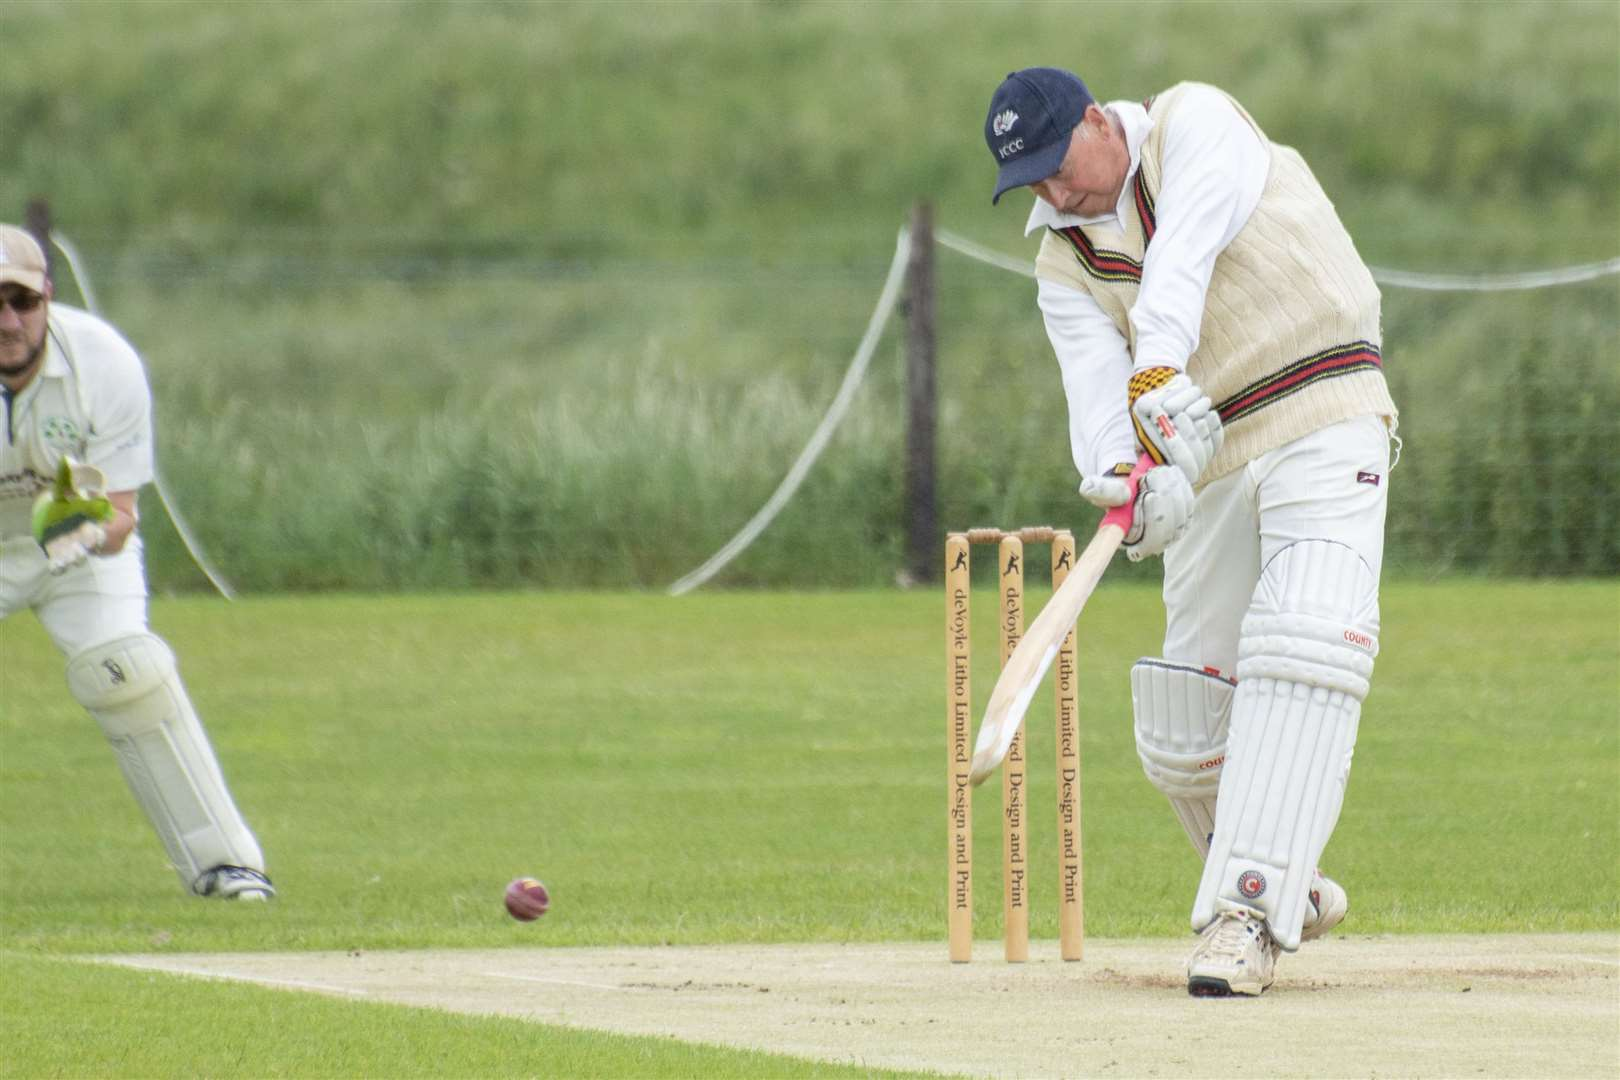 Action from Uppingham 3rds' home clash with Wakerley & Barrowden. Photo: Lee Hellwing (12569977)